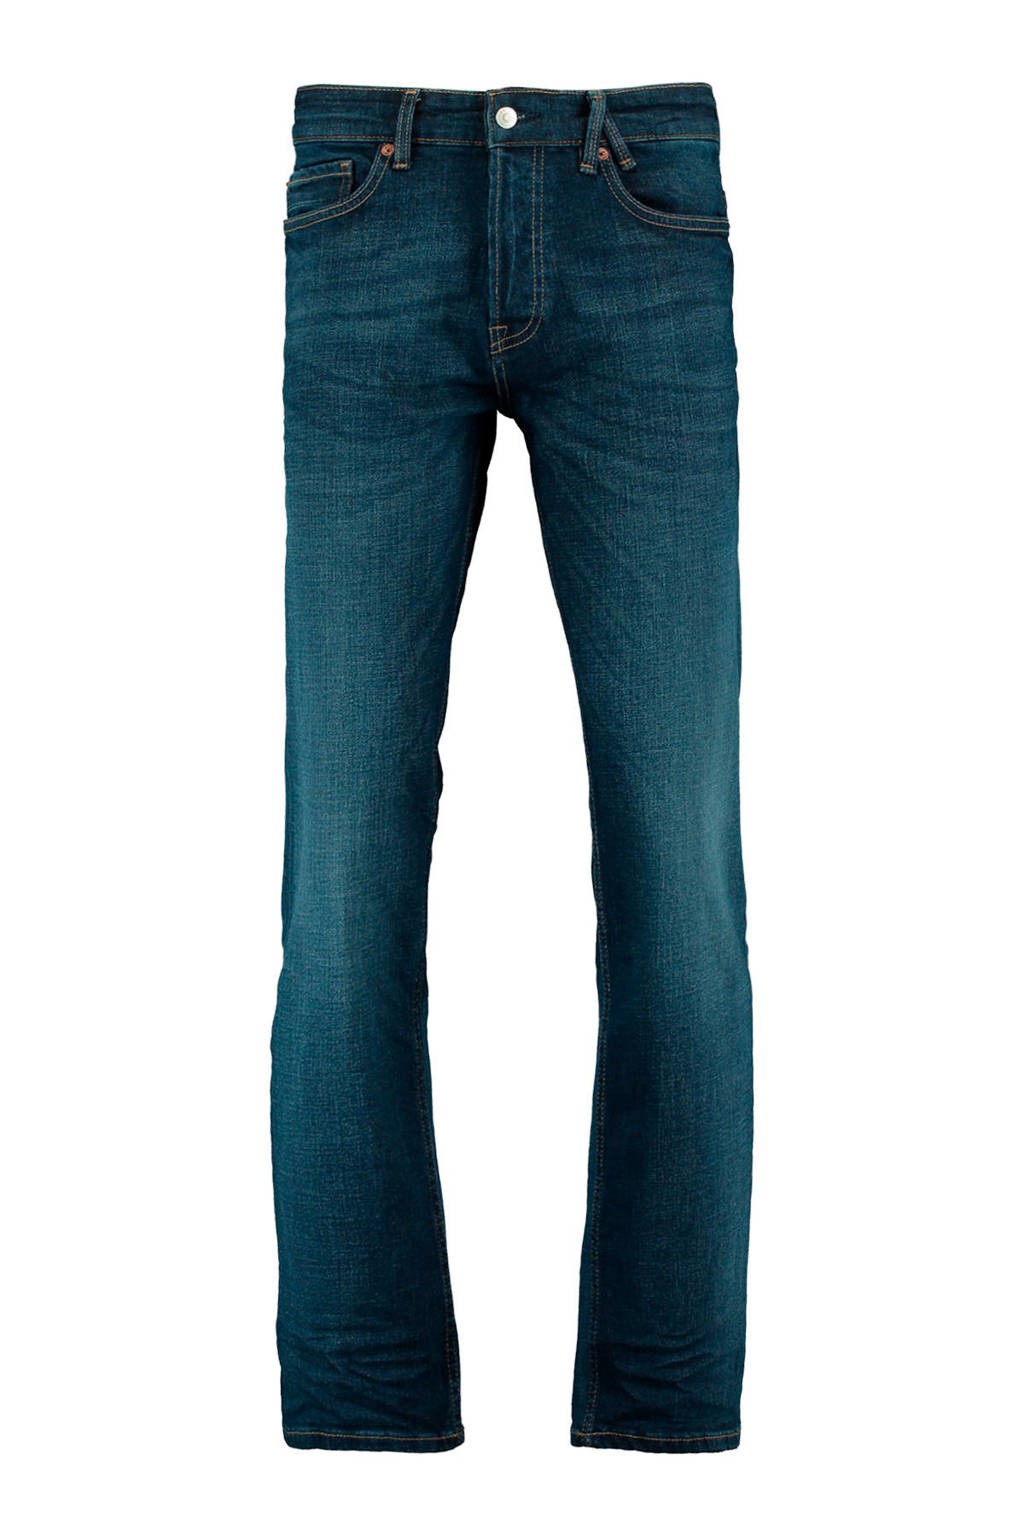 America Today  regular regular fit jeans Dean, Dark denim